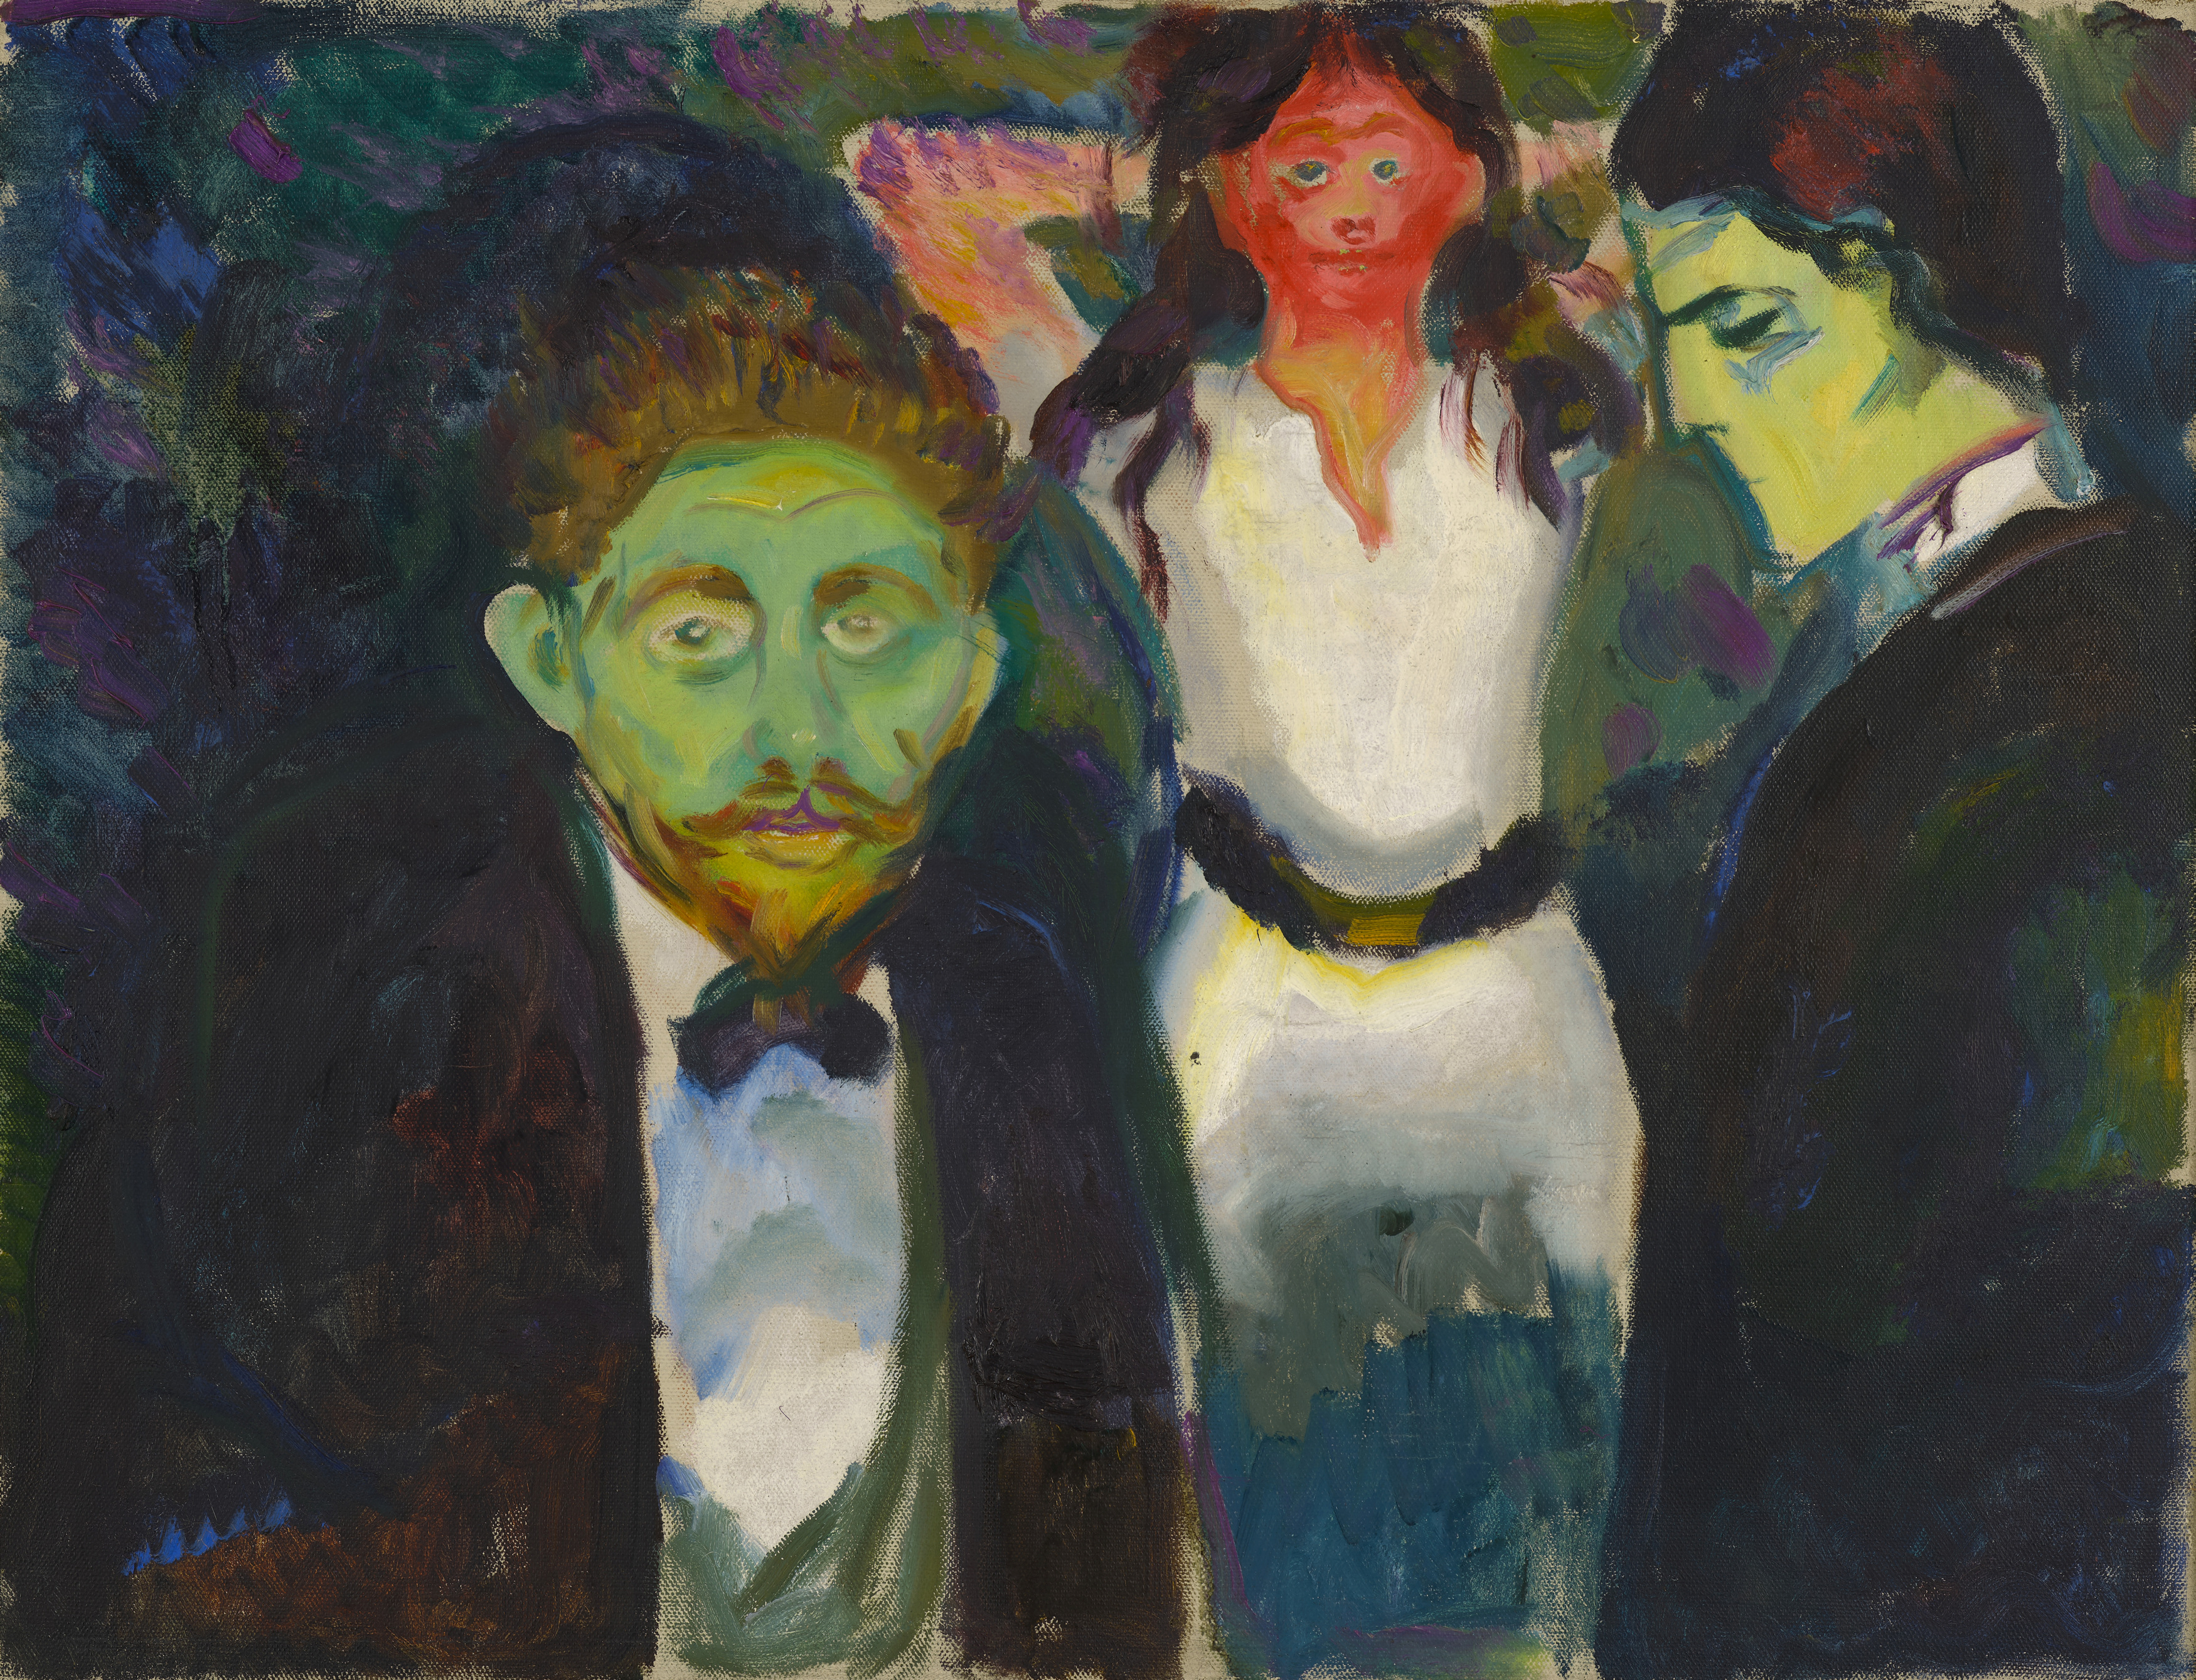 Edvard Munch: Jealousy. Oil on canvas, 1913. Photo © Munchmuseet